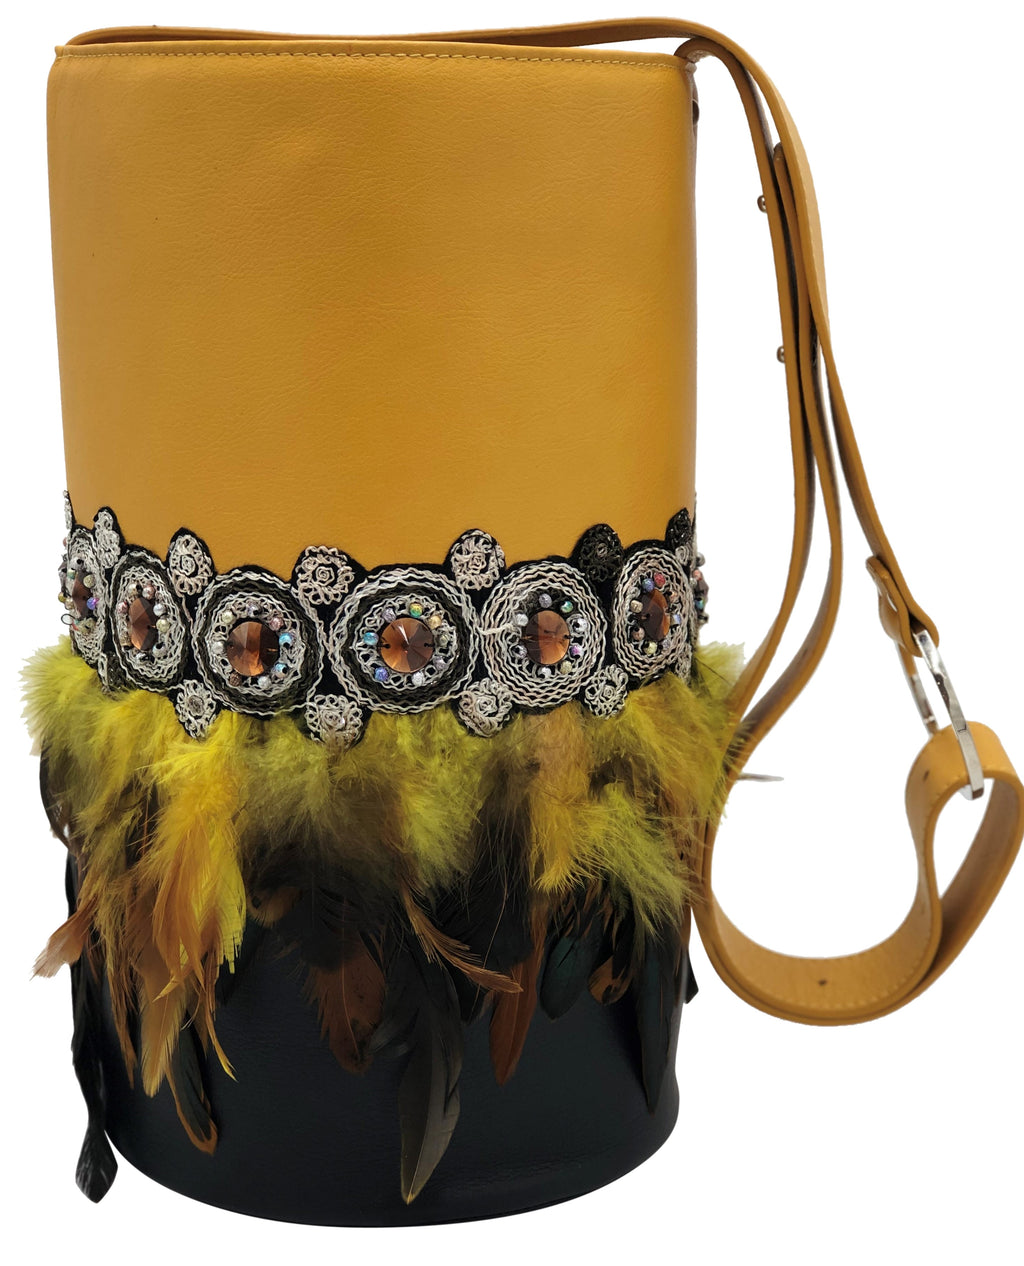 Yellow & black leather bag with feathers